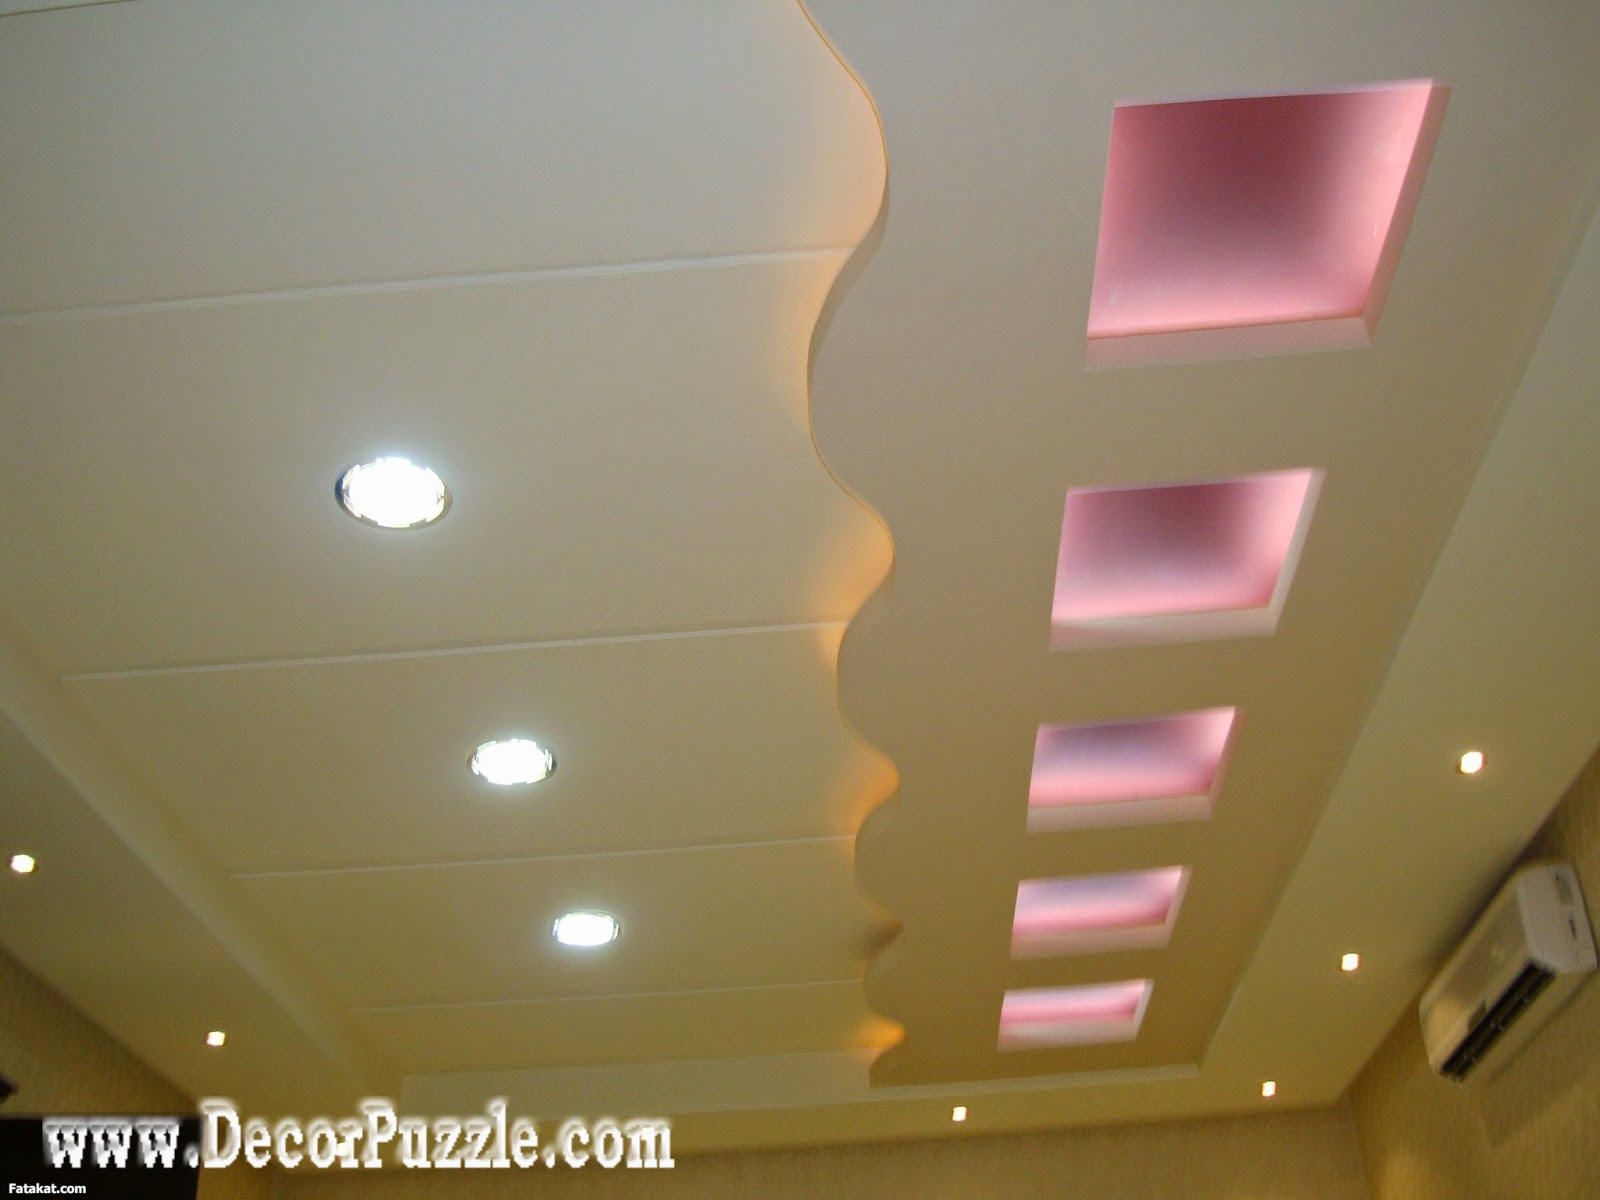 contemporary false ceiling design for living room, plasterboard ceiling